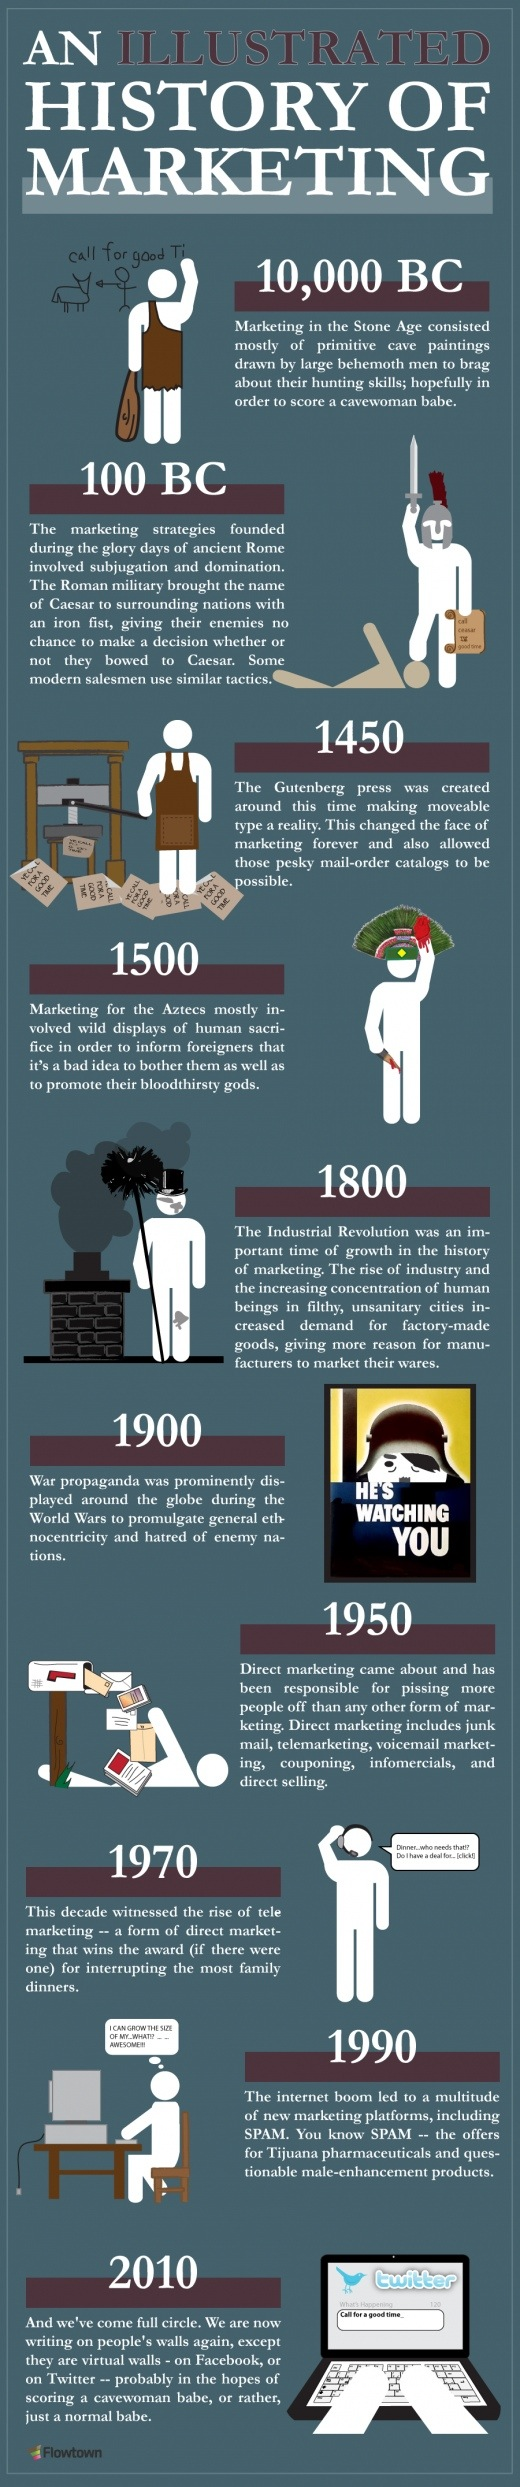 [Infographic] De geschiedenis van marketing